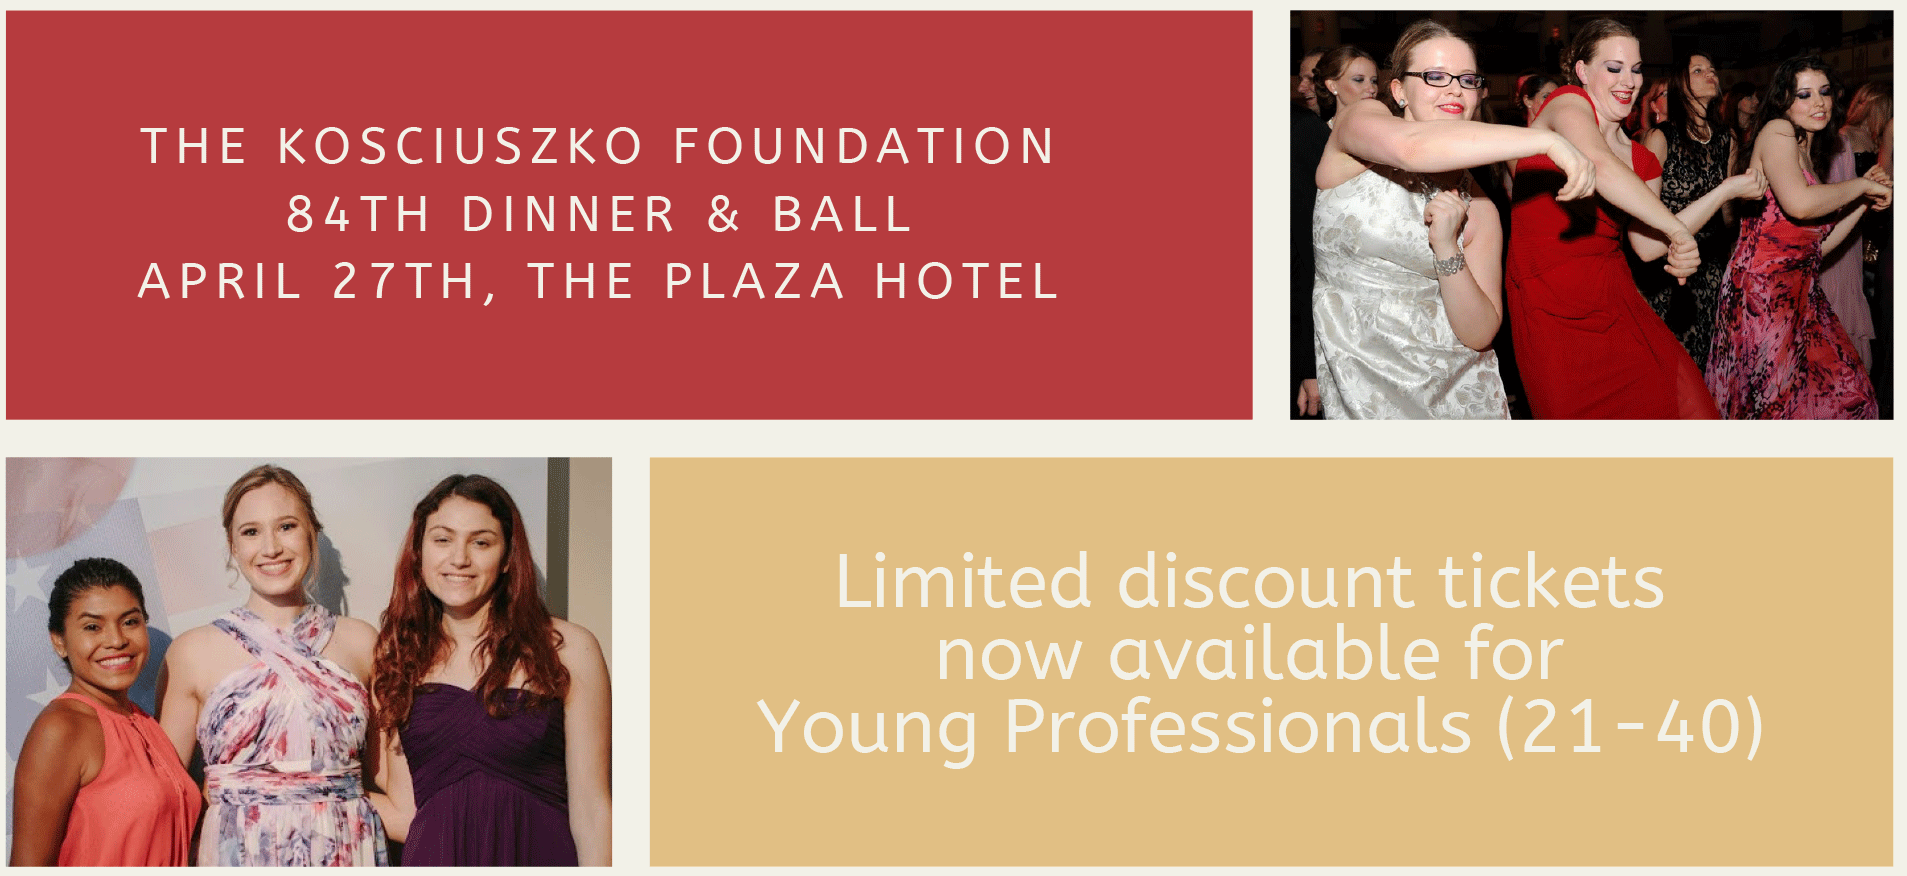 New York: Discount Tickets for Young Professionals to Attend KF Dinner and Ball